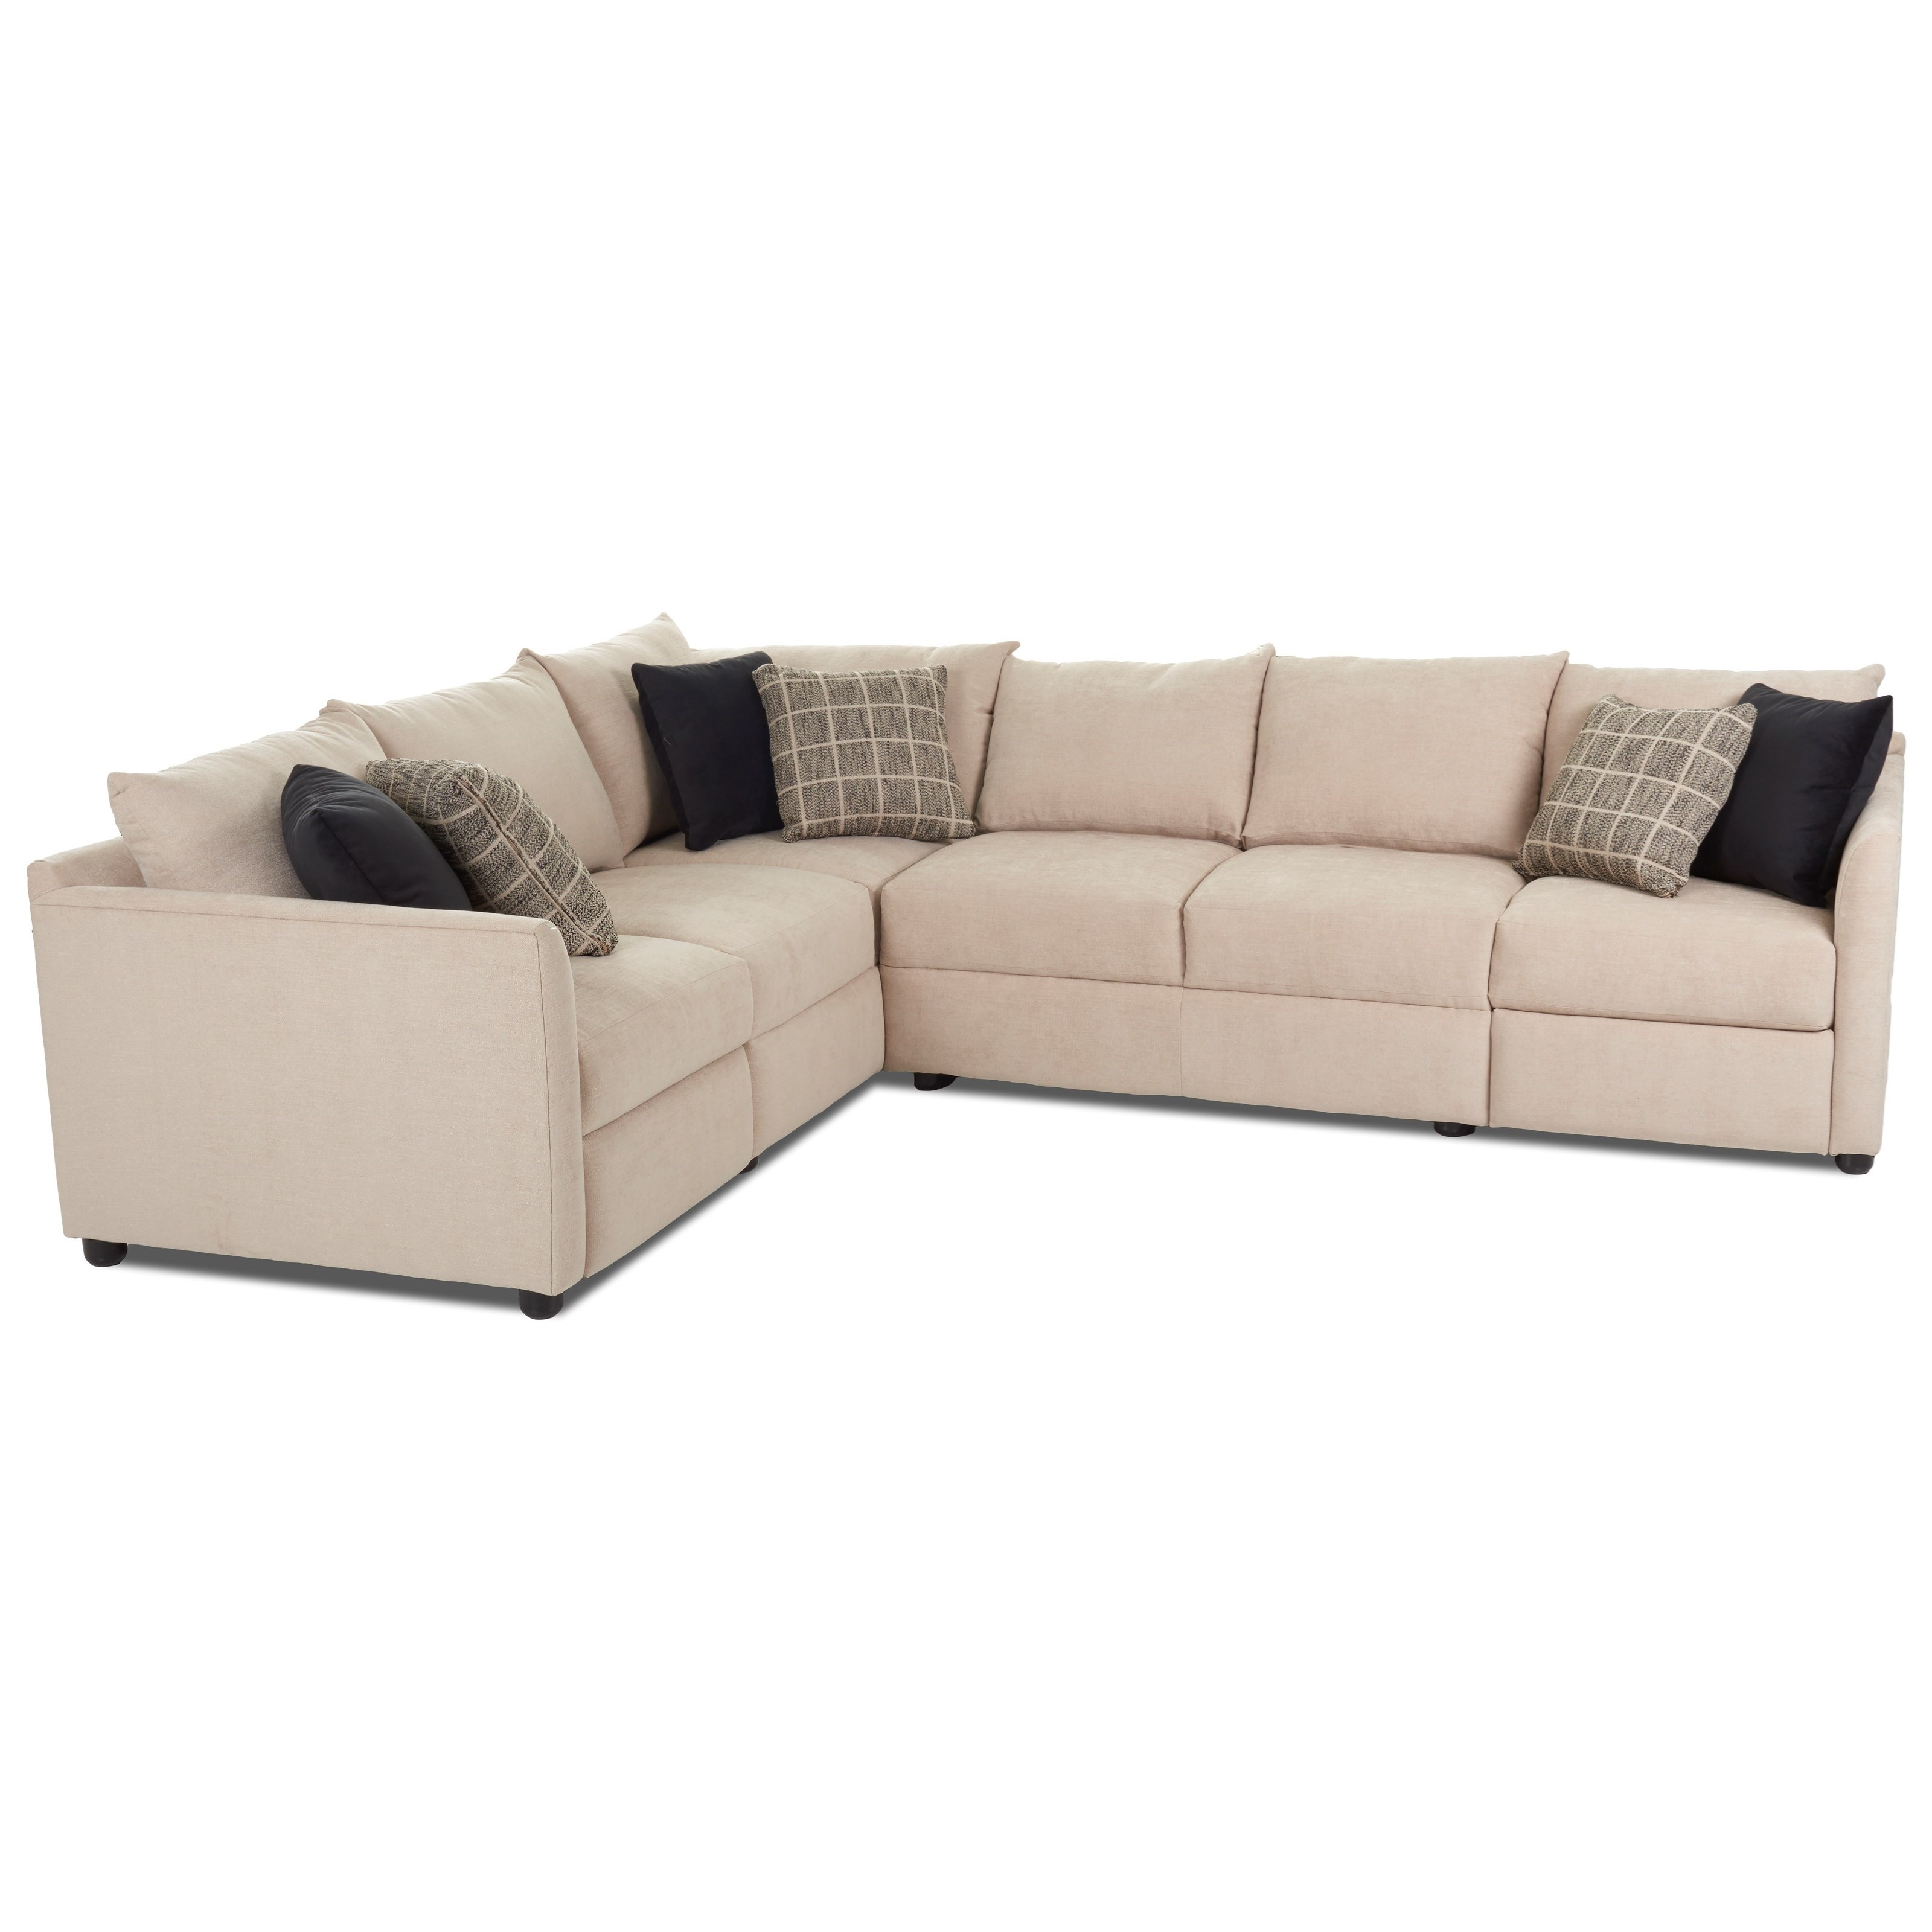 Two Piece Power Hybrid Reclining Sectional Sofa with LAF Corner Sofa